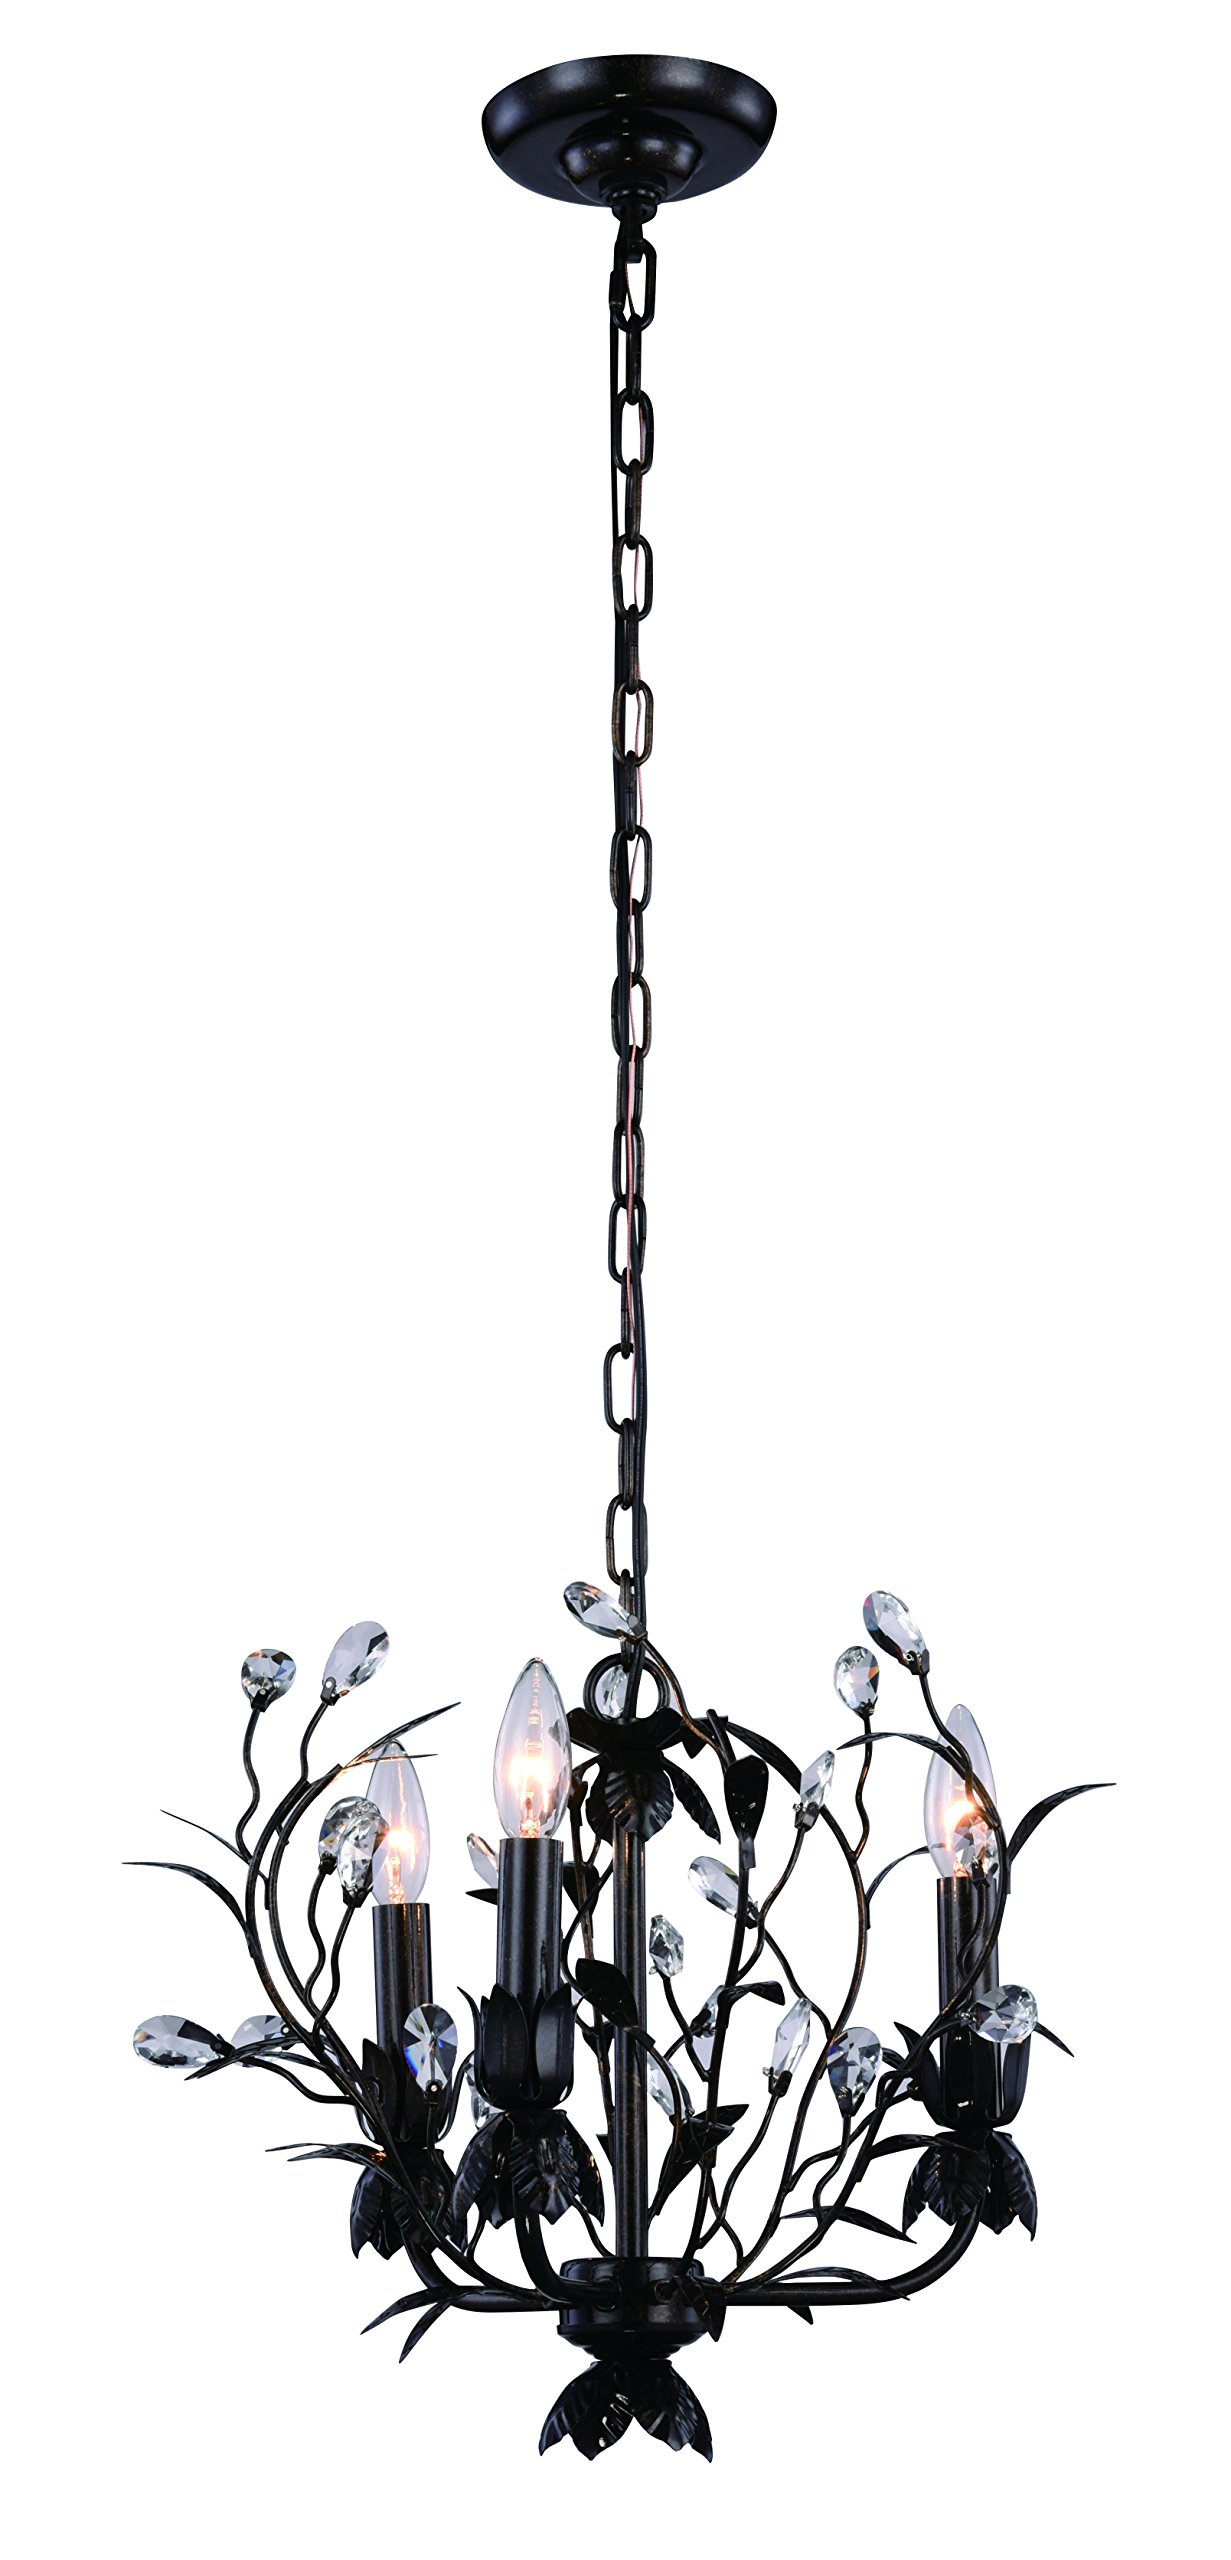 Arbor Collection Pendant Lamp D:14In. H:13In. Lt:3 Golden Dark Bronze Finish by Urban Classic (Image #1)